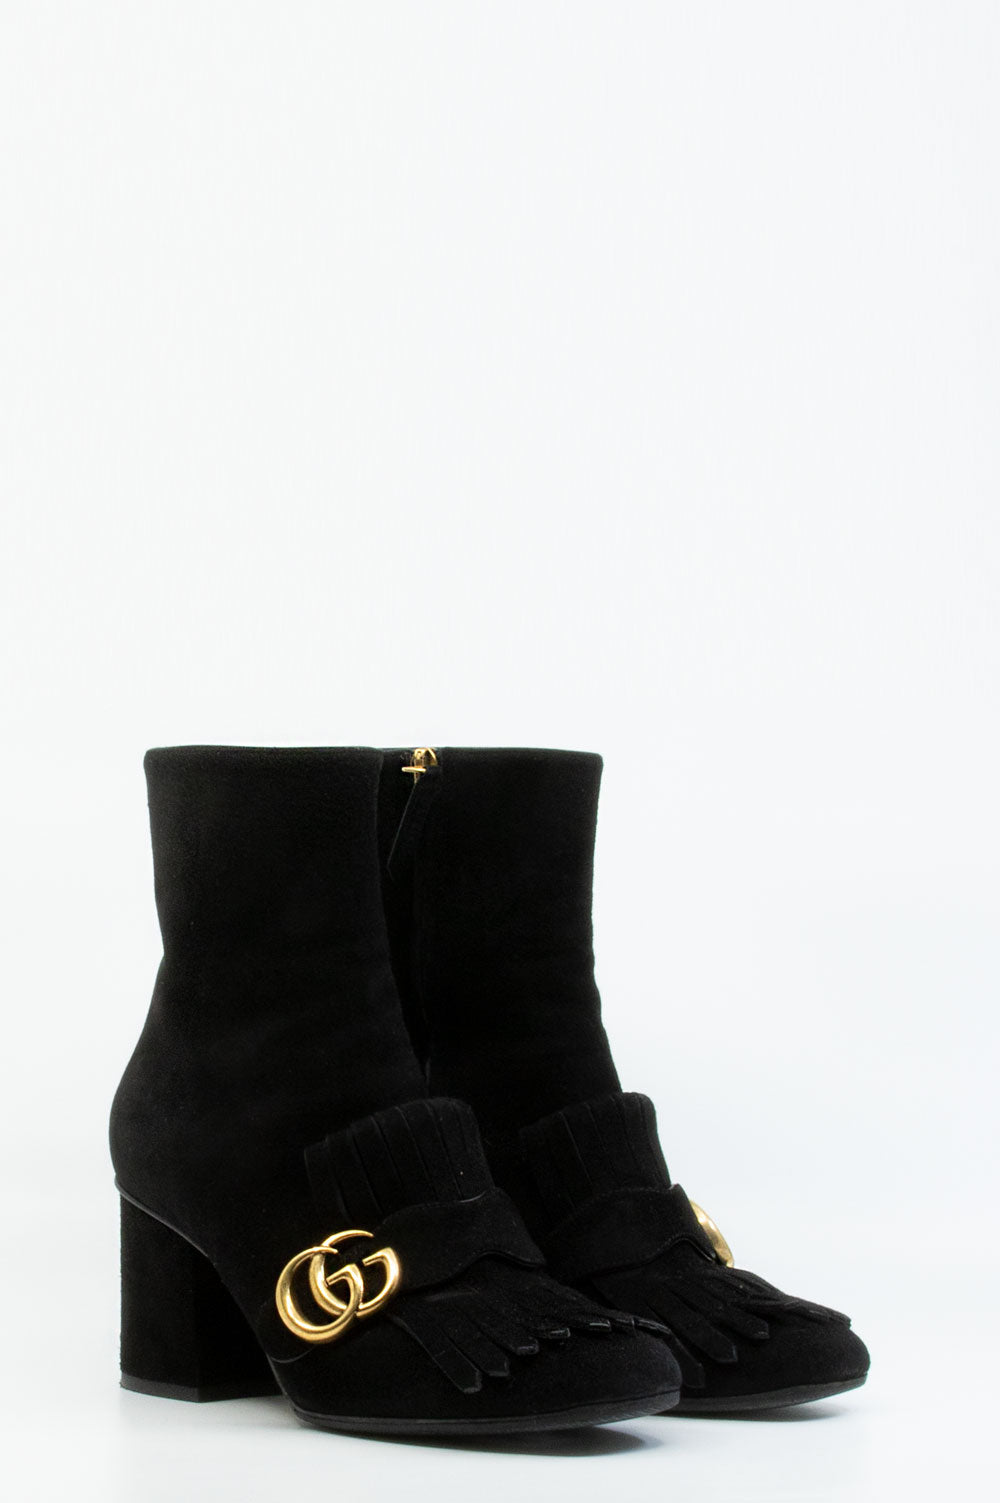 GUCCI Marmont Boots